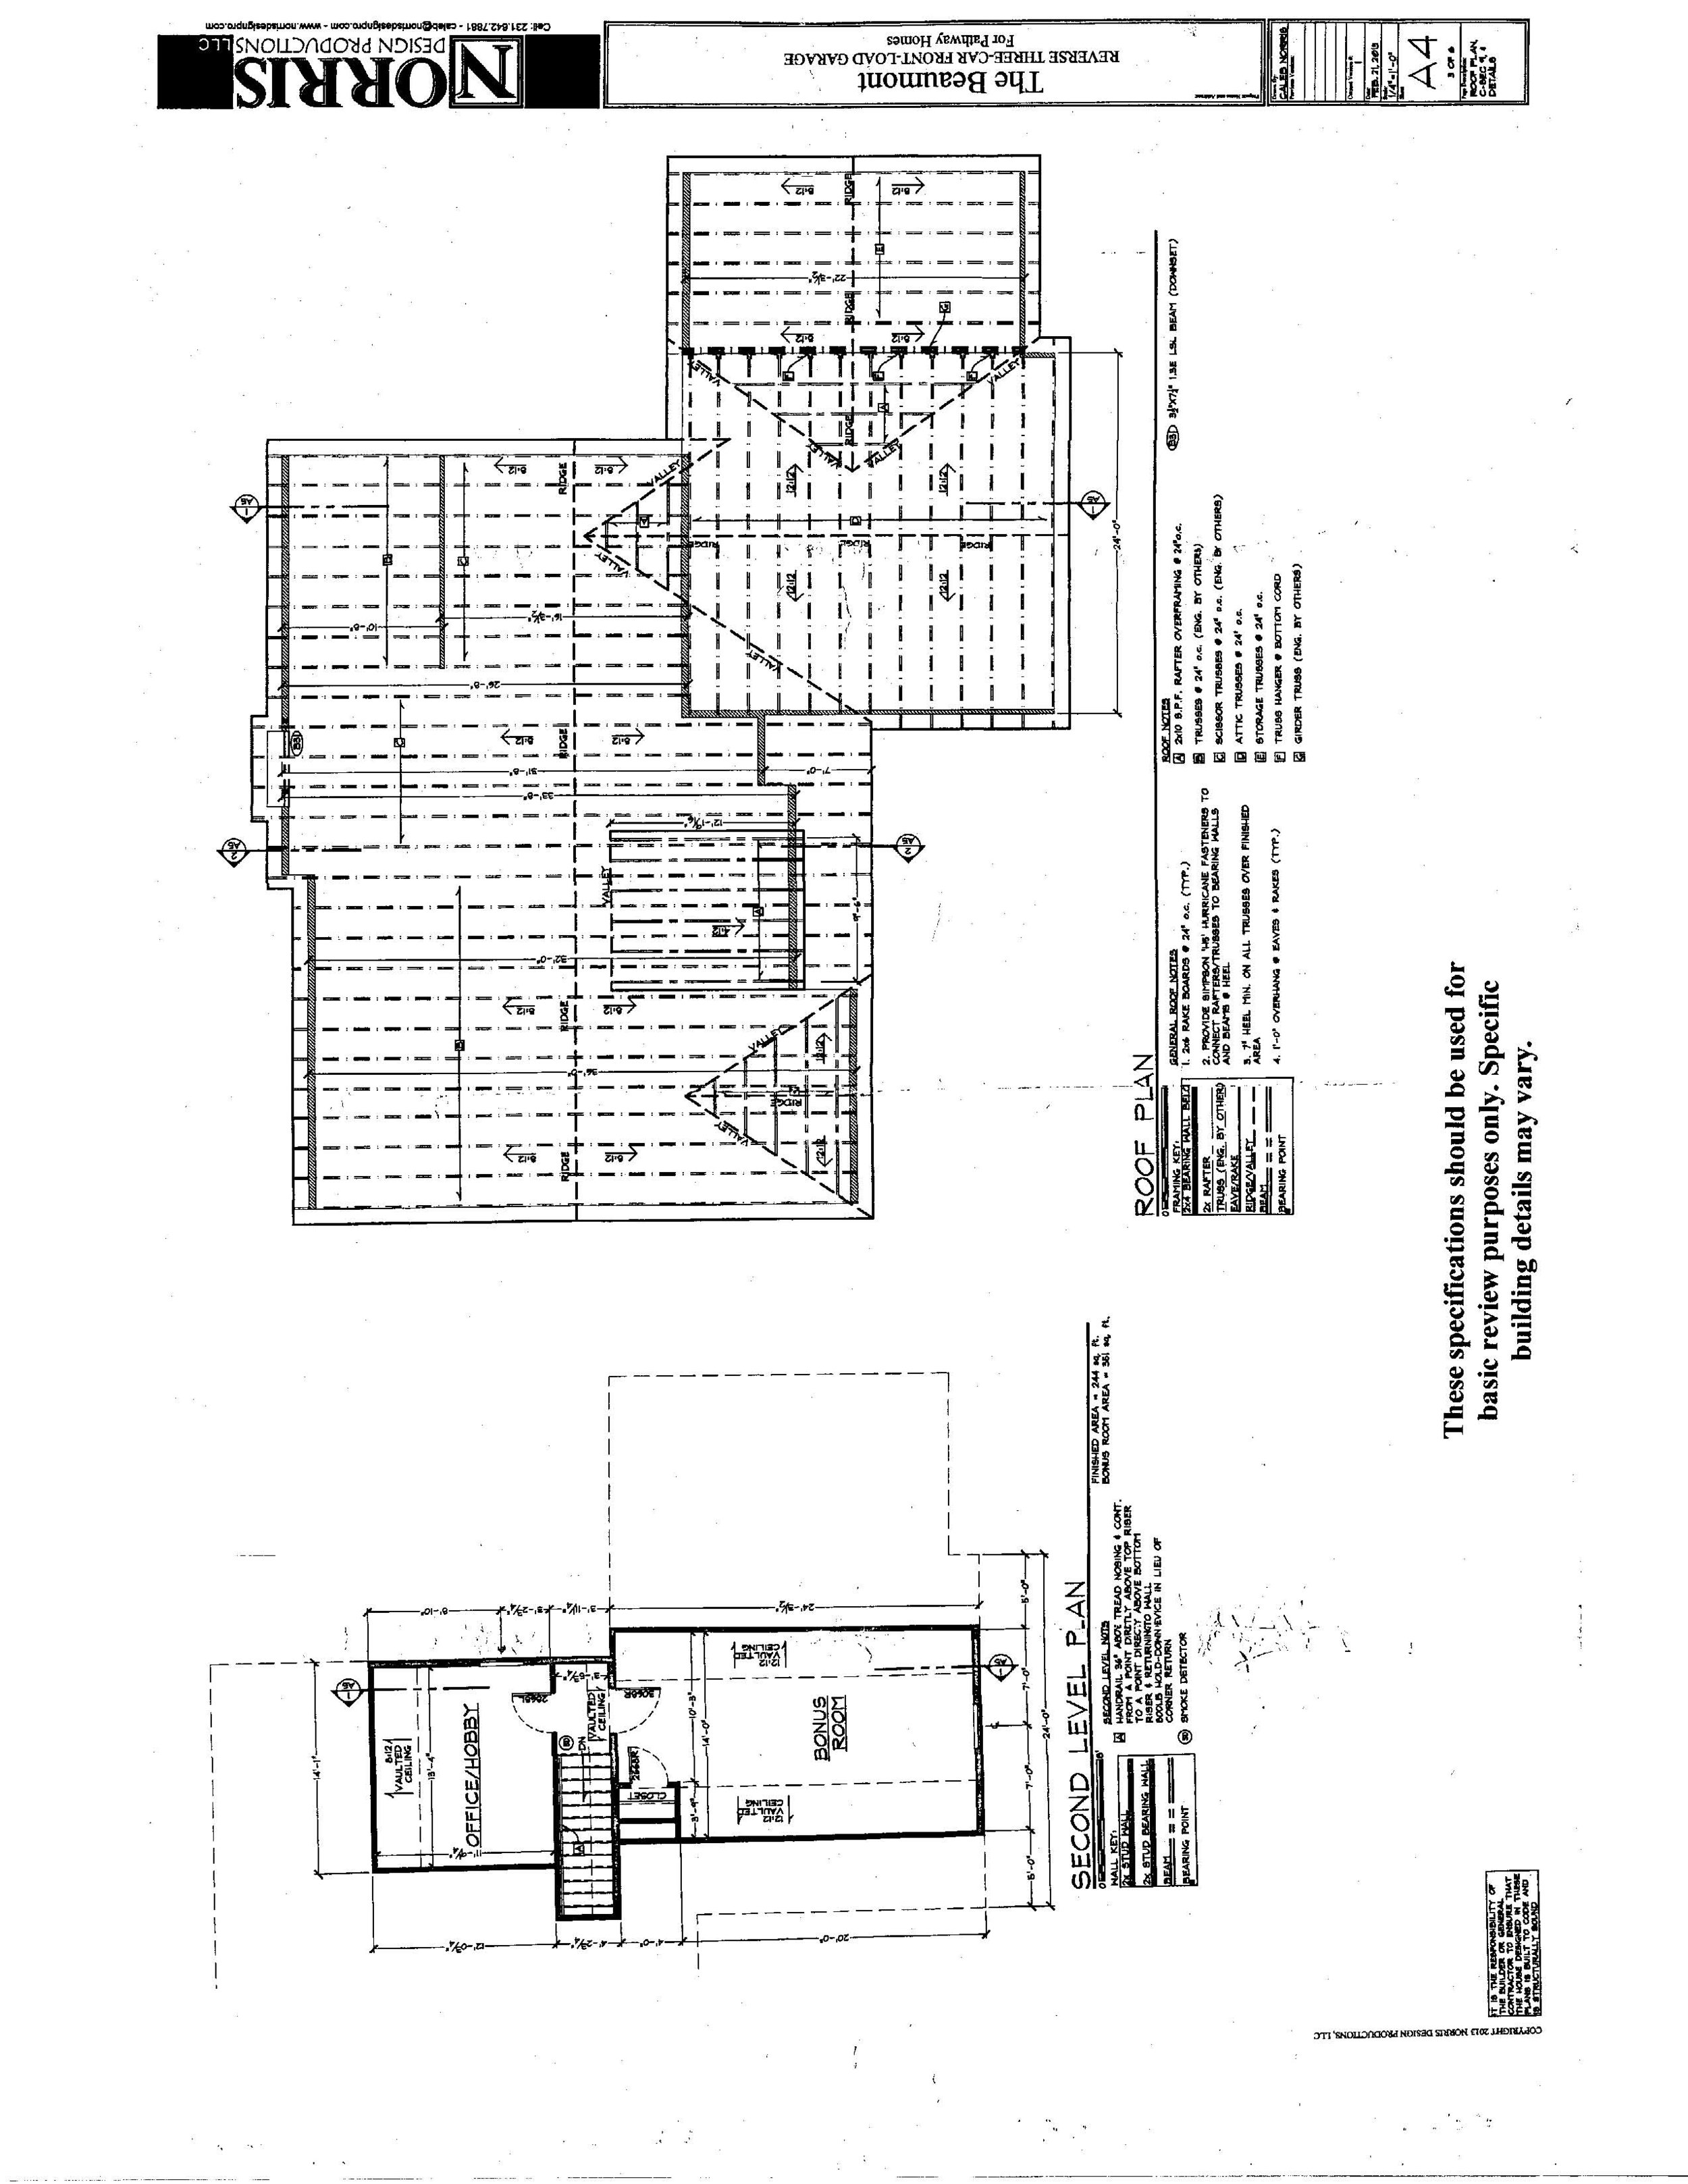 10049 Fishers Run, Traverse City, MI – Newer 2,175 Sq Ft Home on 1.32 Acres - Marketing Packet (22).jpg